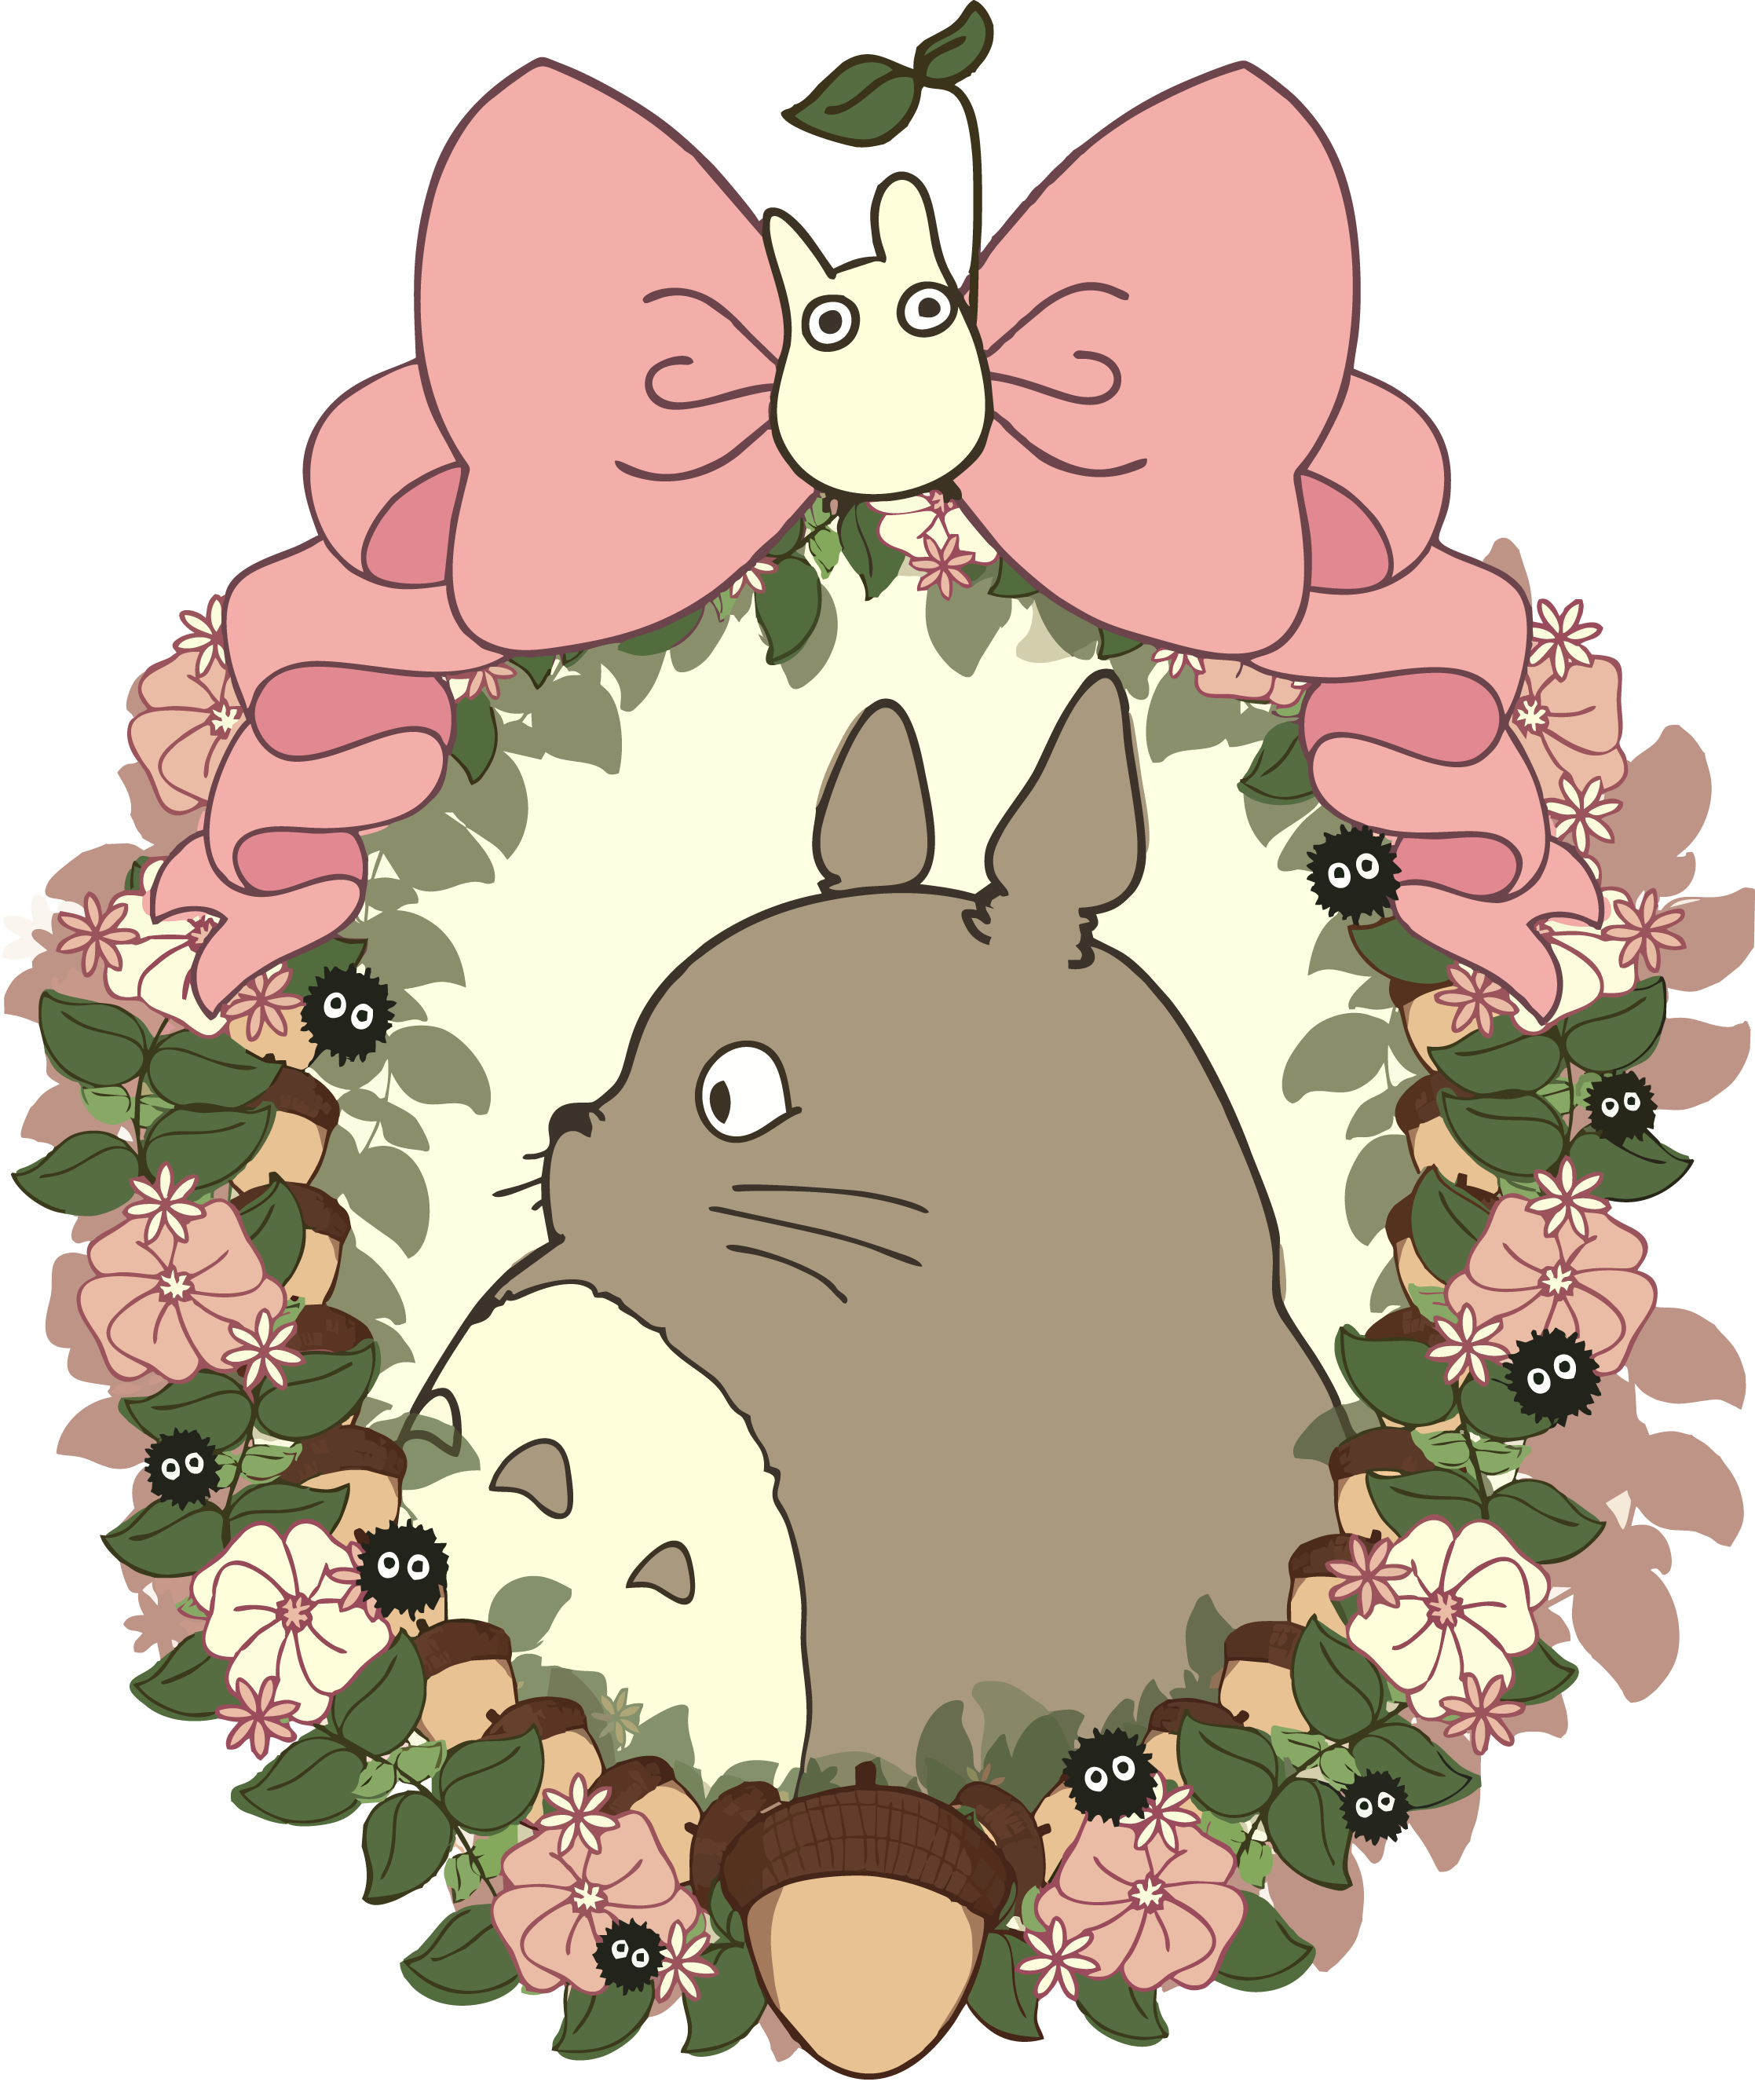 Miyazaki drawing forest. Pin by kaitlyn holloway